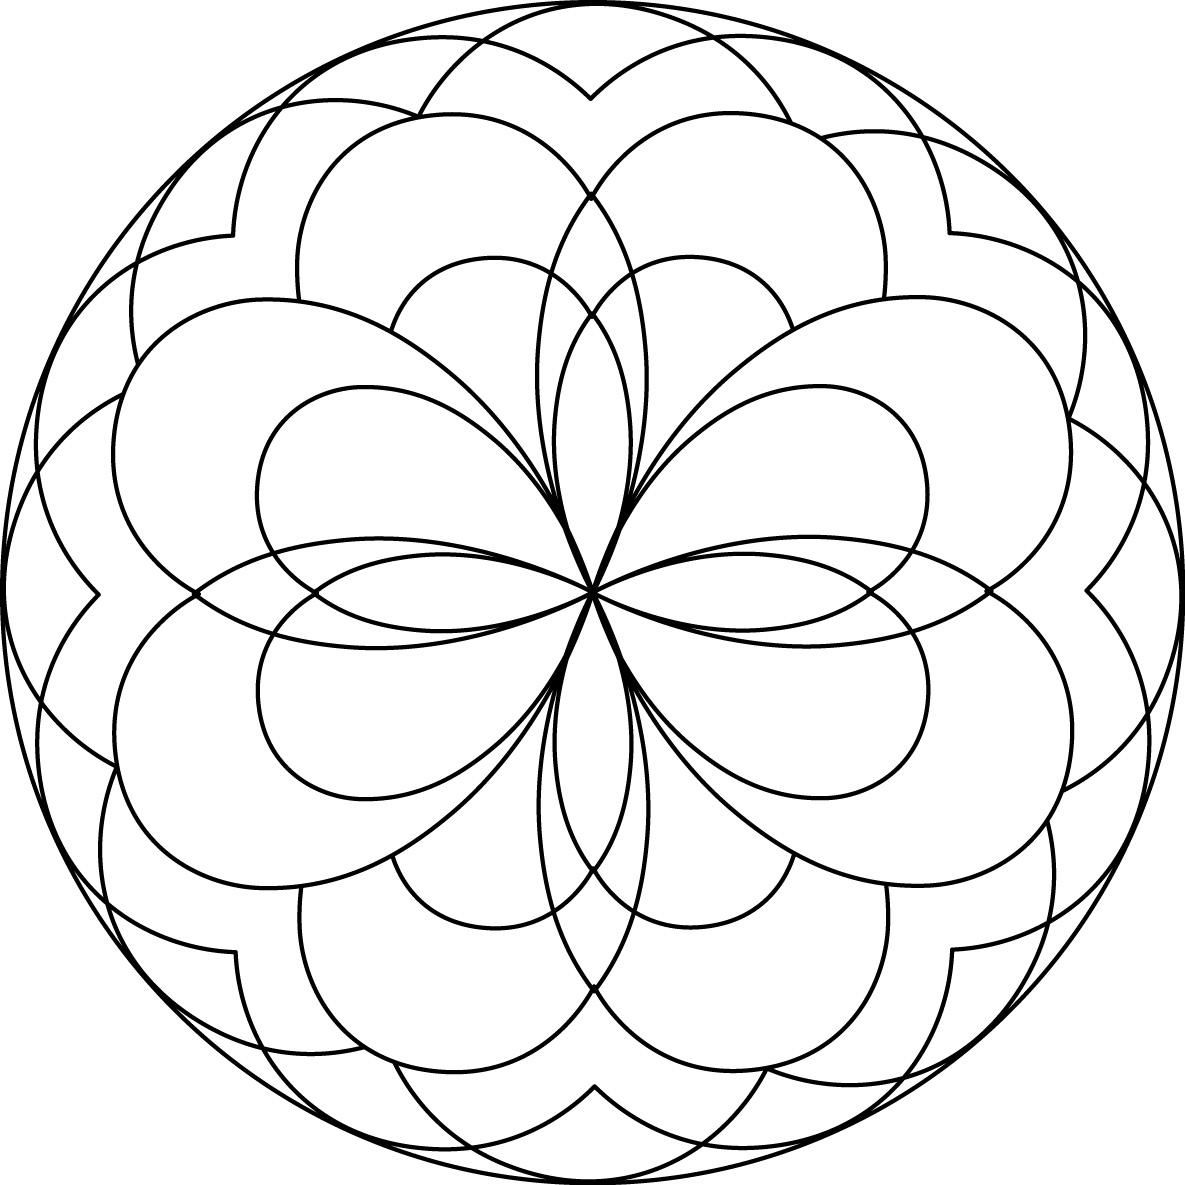 mandalas to print and color Mandalas for Children